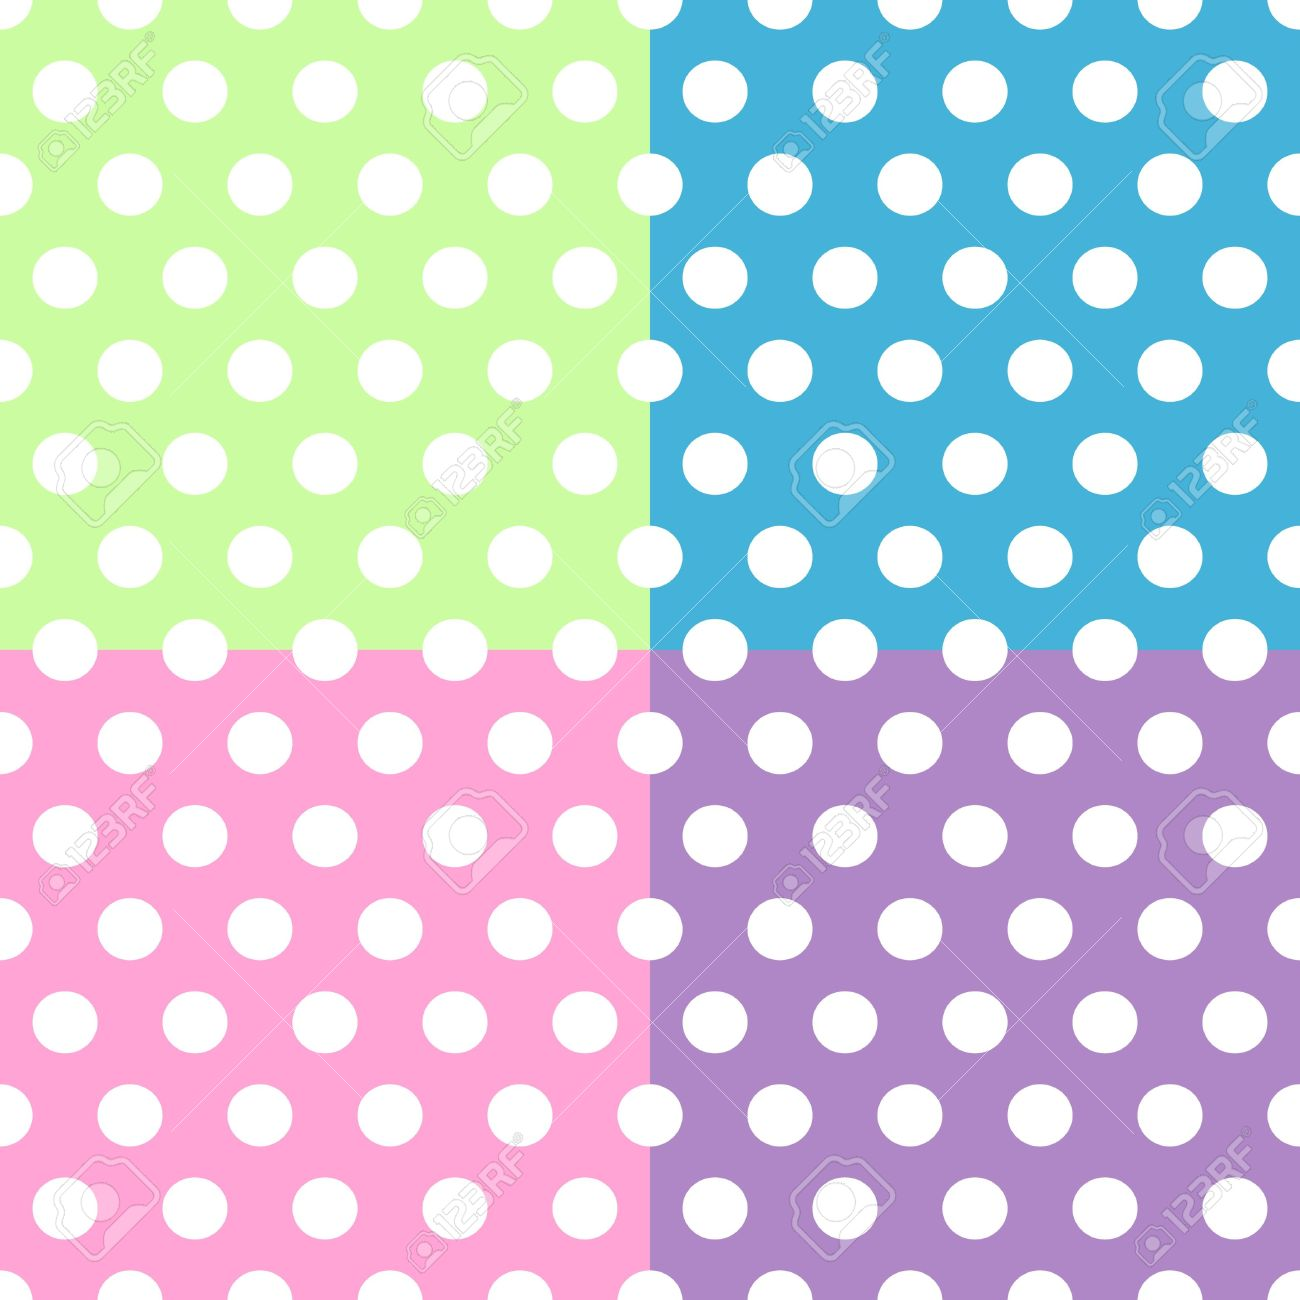 Seamless pattern of cute, fun and bold white polka dots patterns over pink, purple, green and blue squares background, can be used separately or together. Stock Vector - 14128188